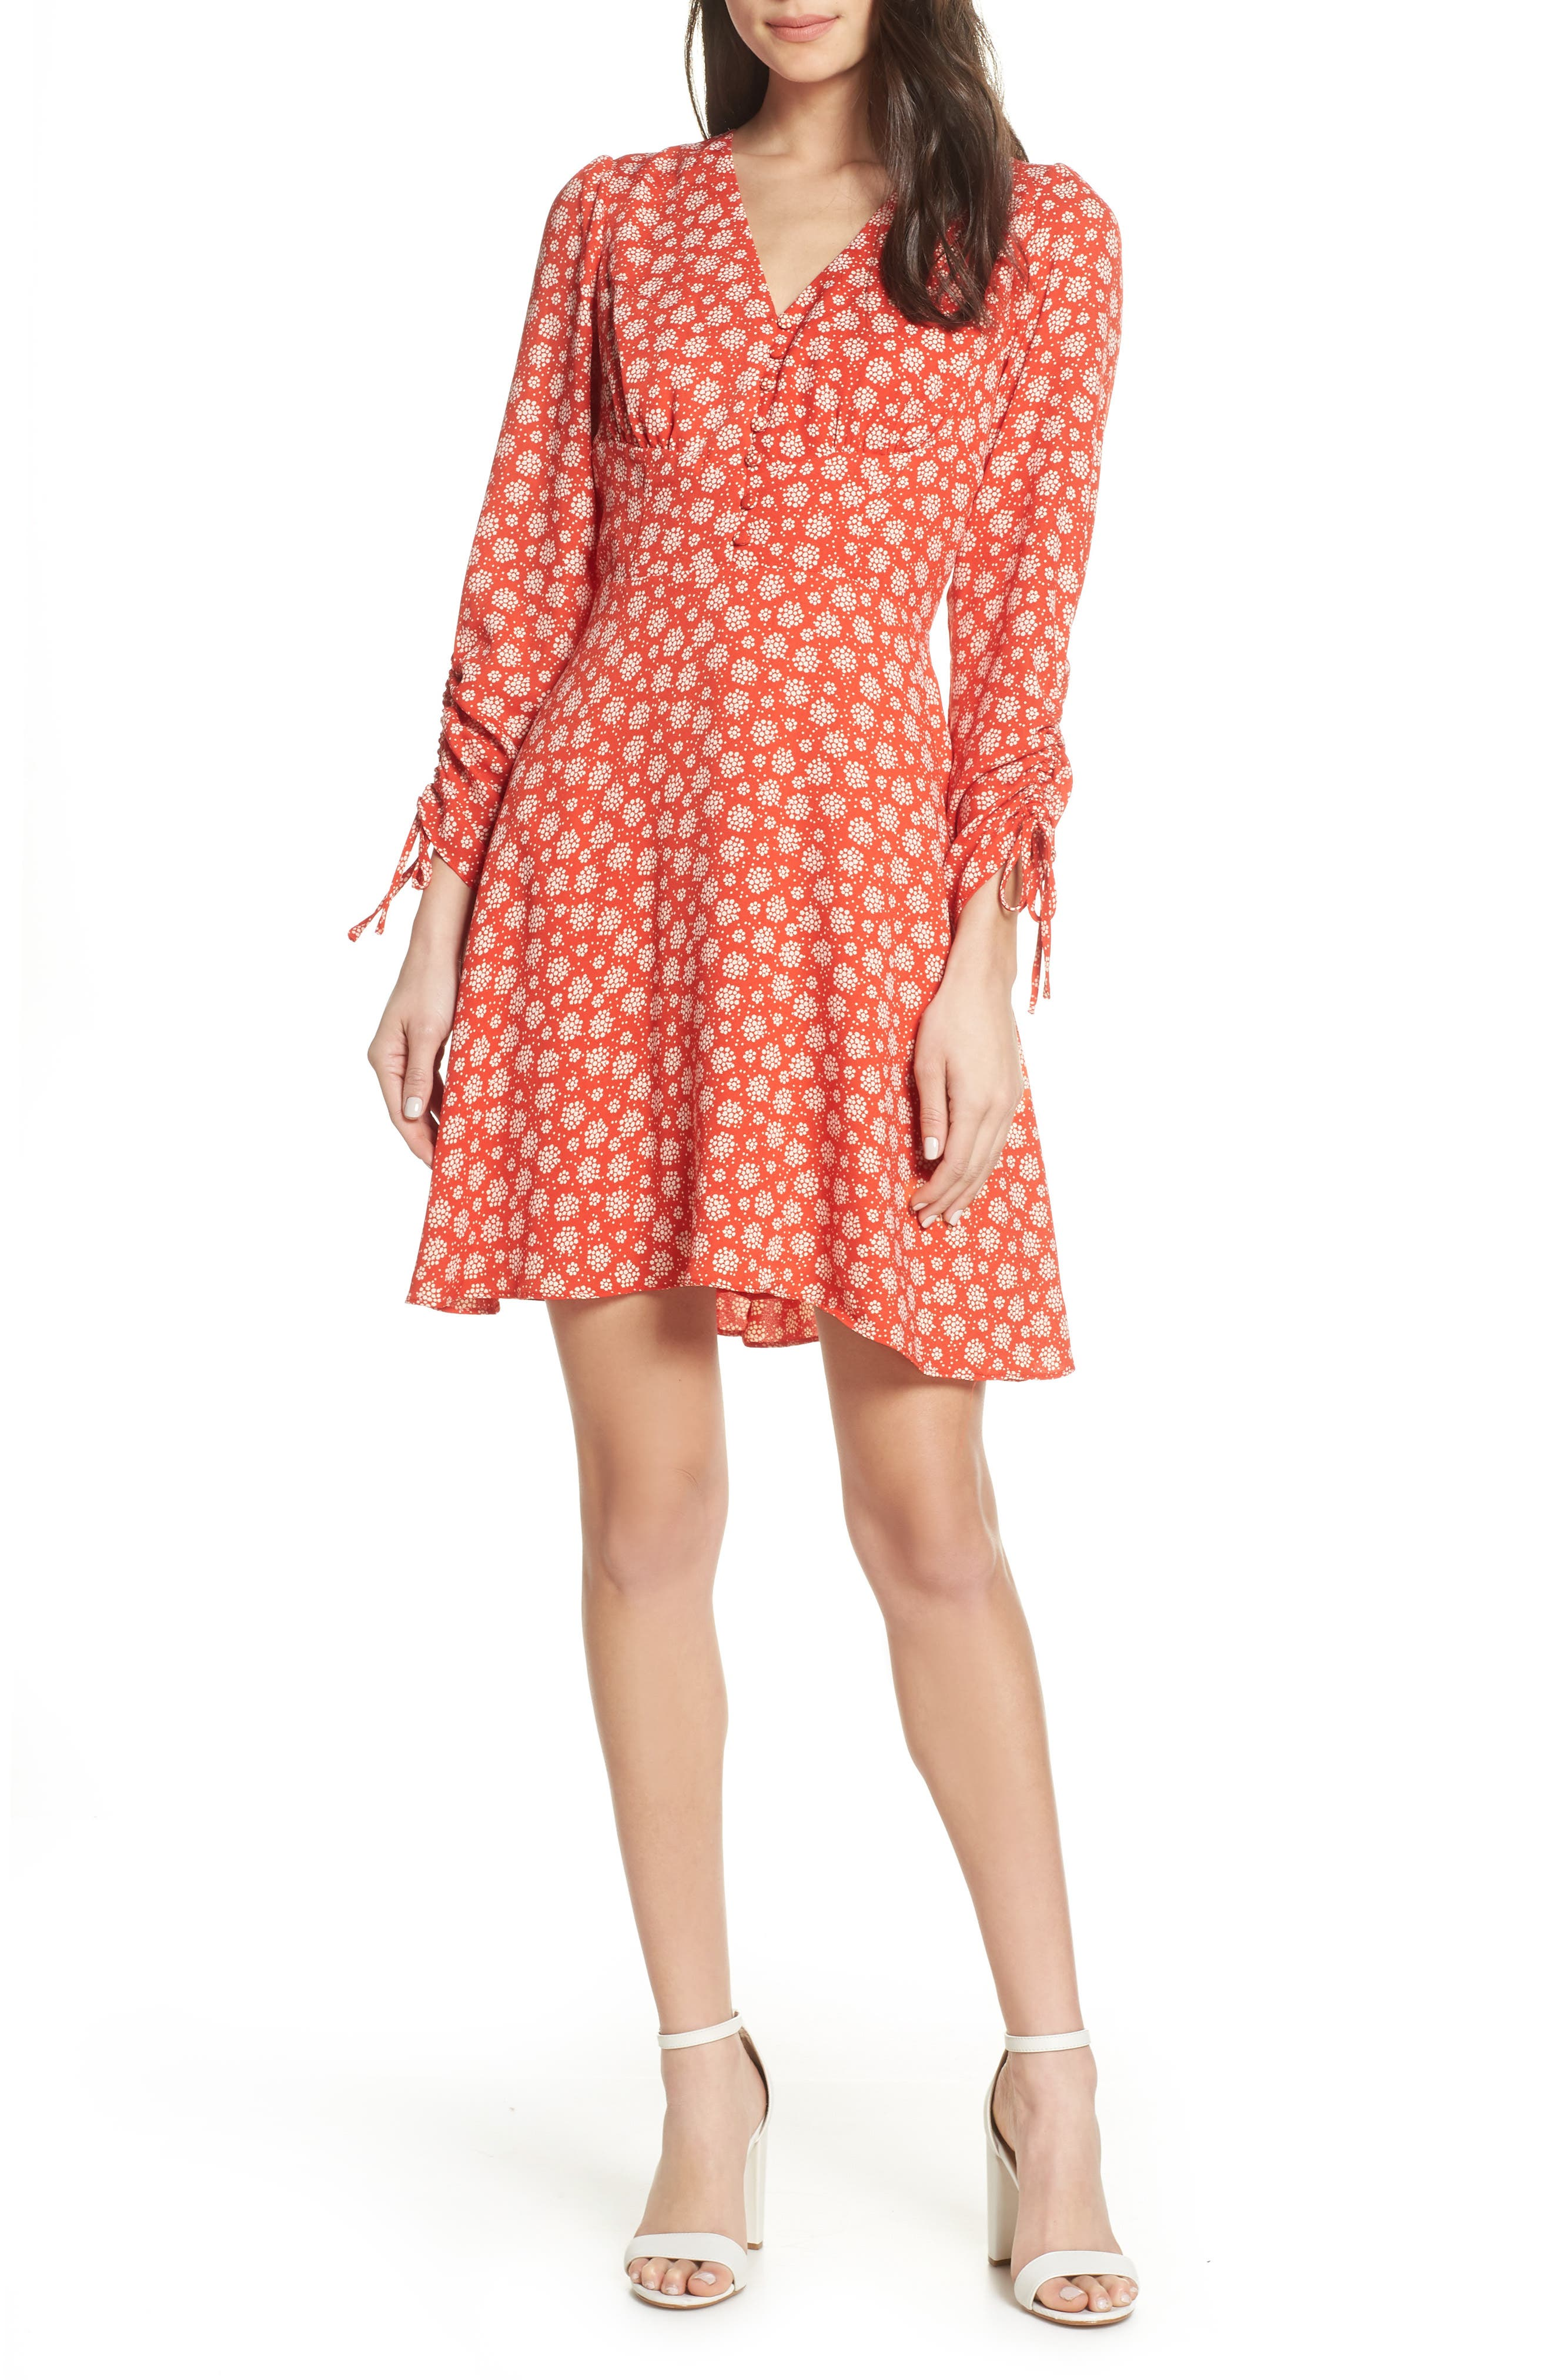 19 COOPER Ruched Sleeve Fit & Flare Dress, Main, color, 610